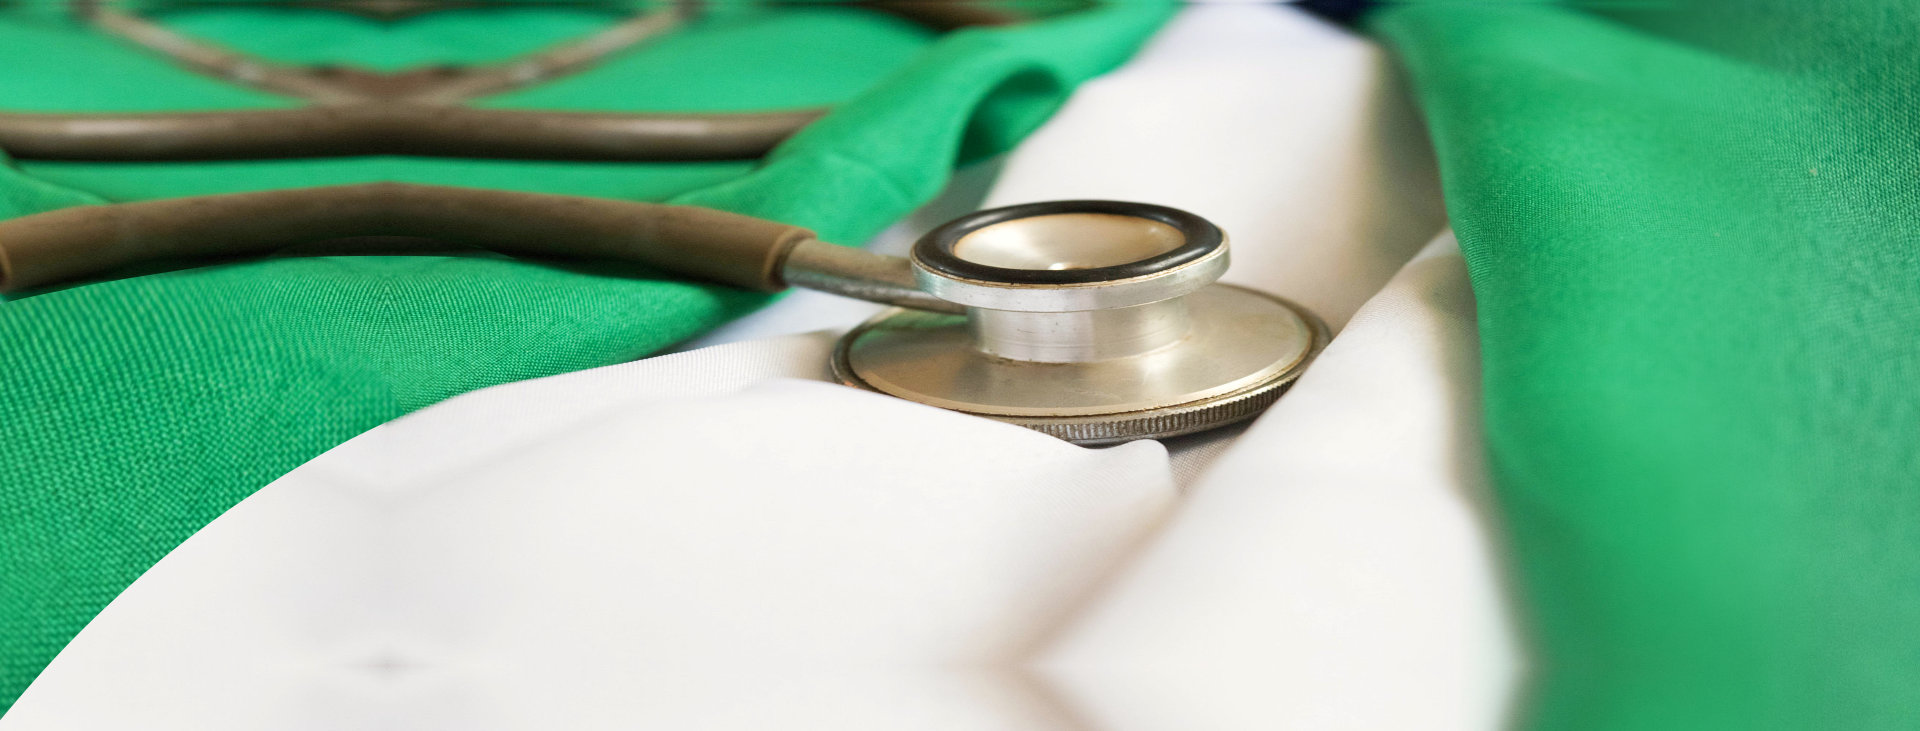 stethoscope on green towel